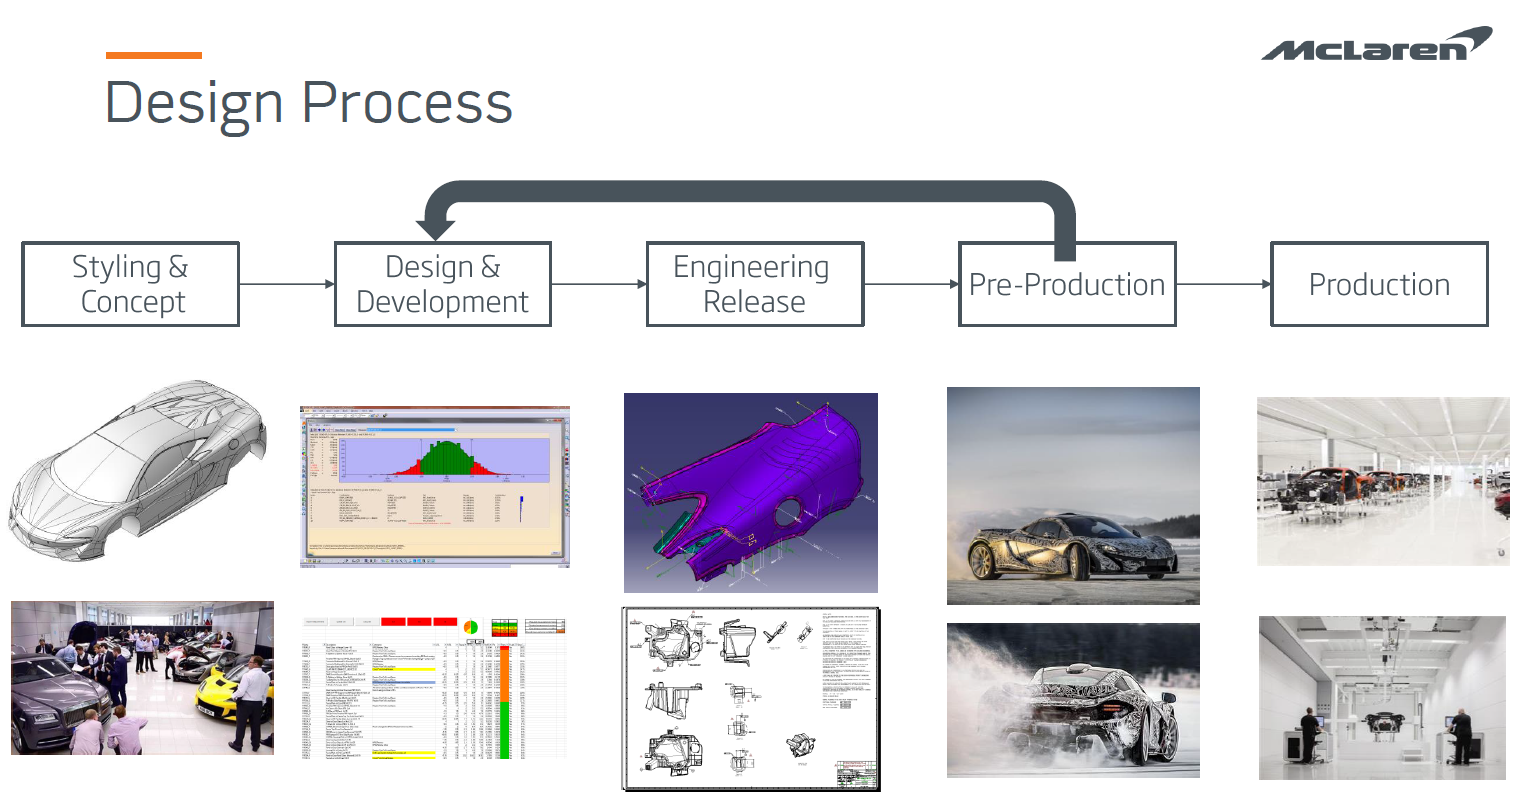 mclaren-design-process.png